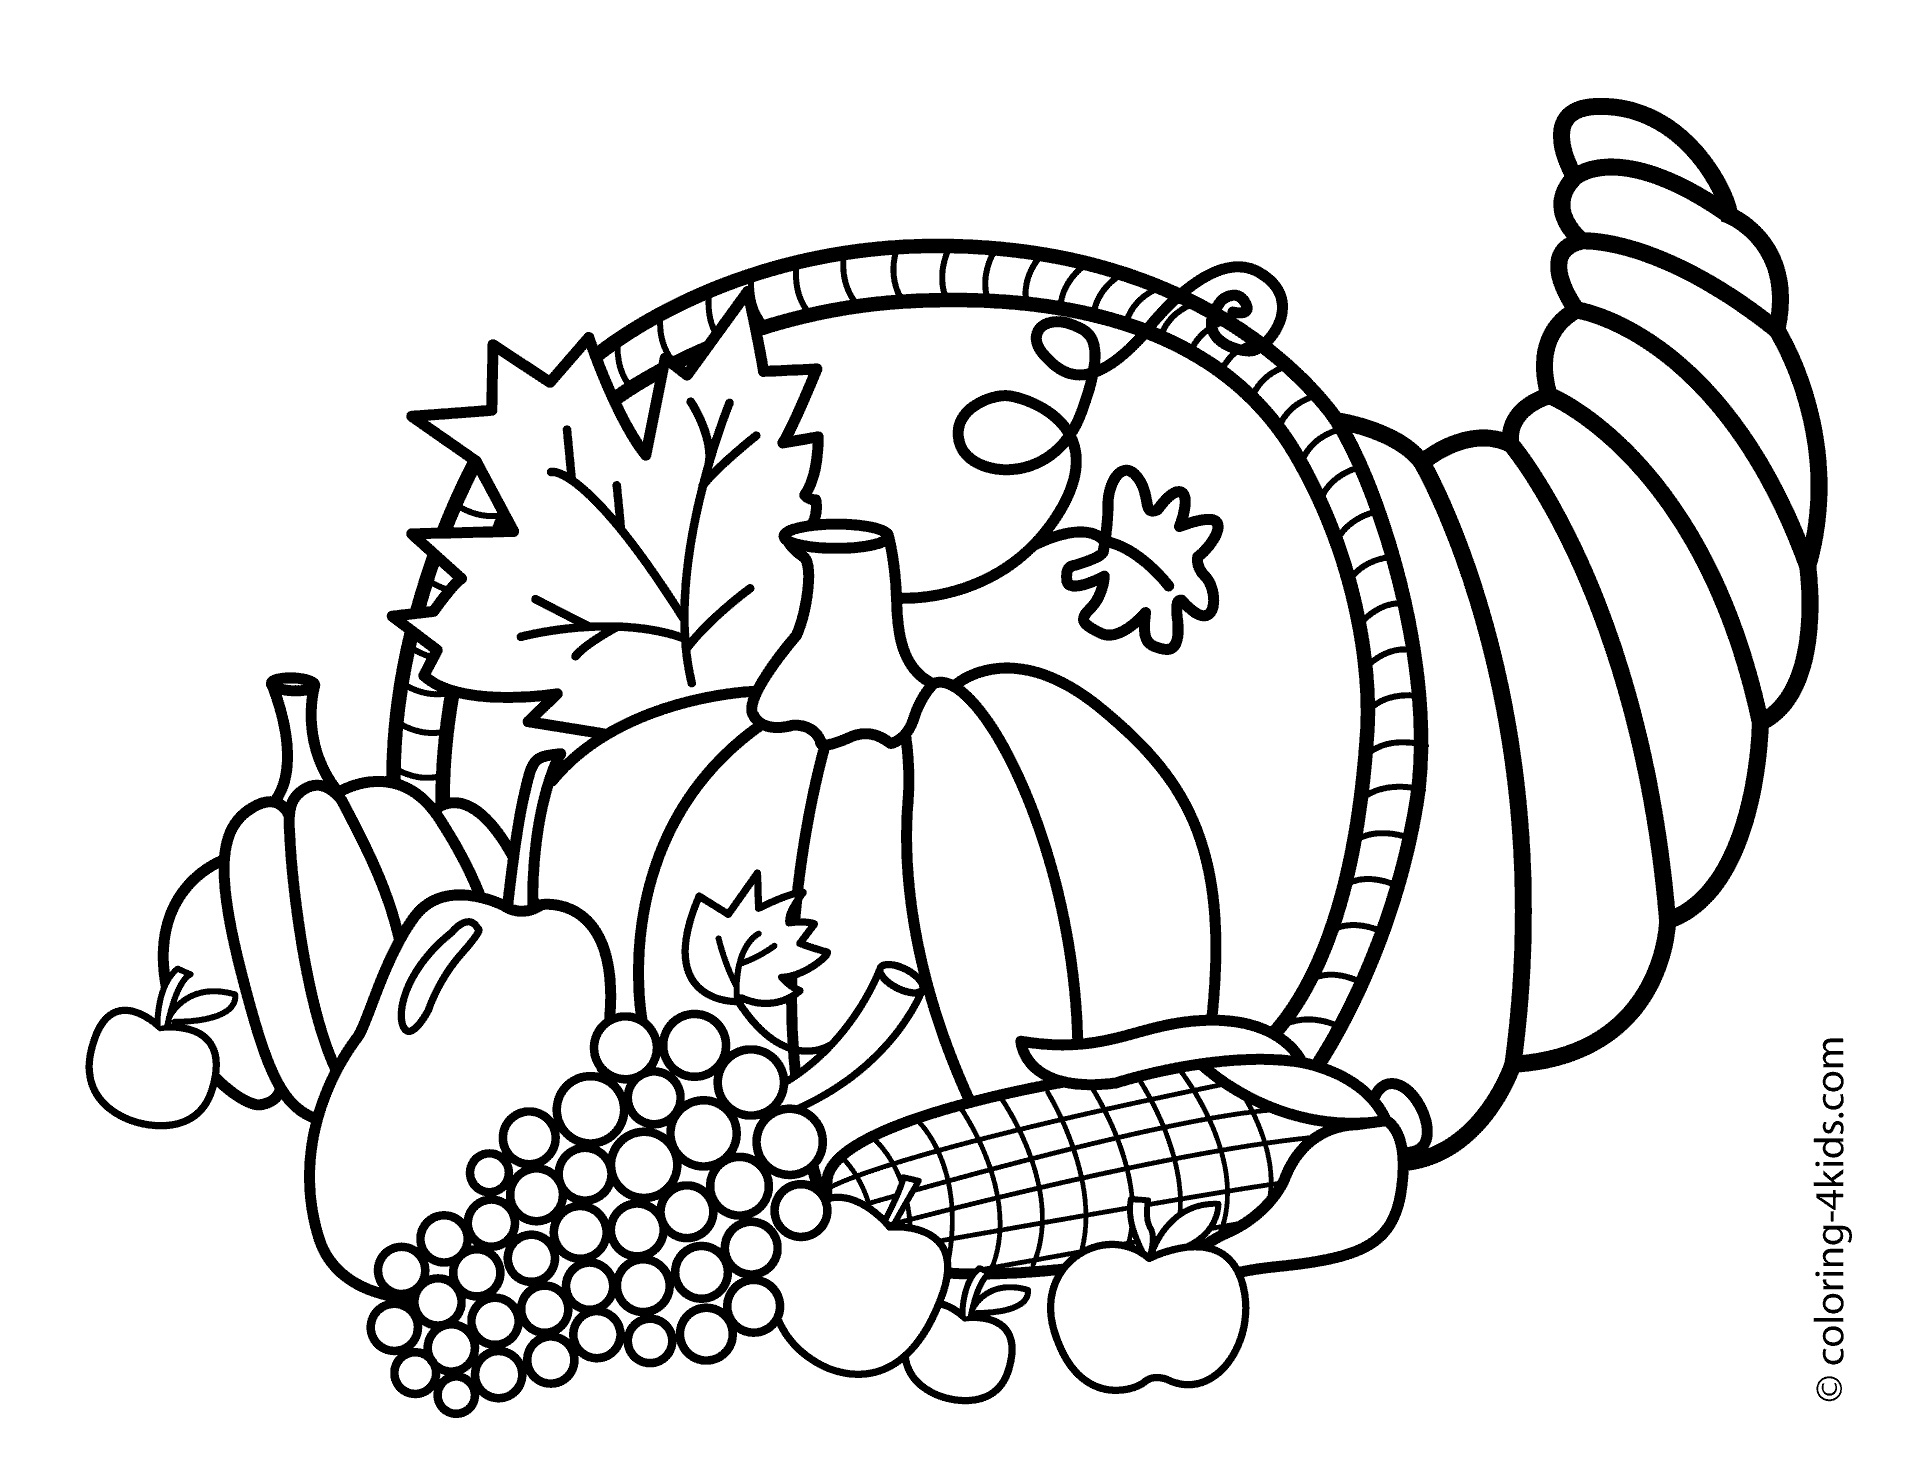 charlie brown thanksgiving coloring pages free peanuts thanksgiving coloring pages at getcoloringscom coloring charlie thanksgiving free brown pages